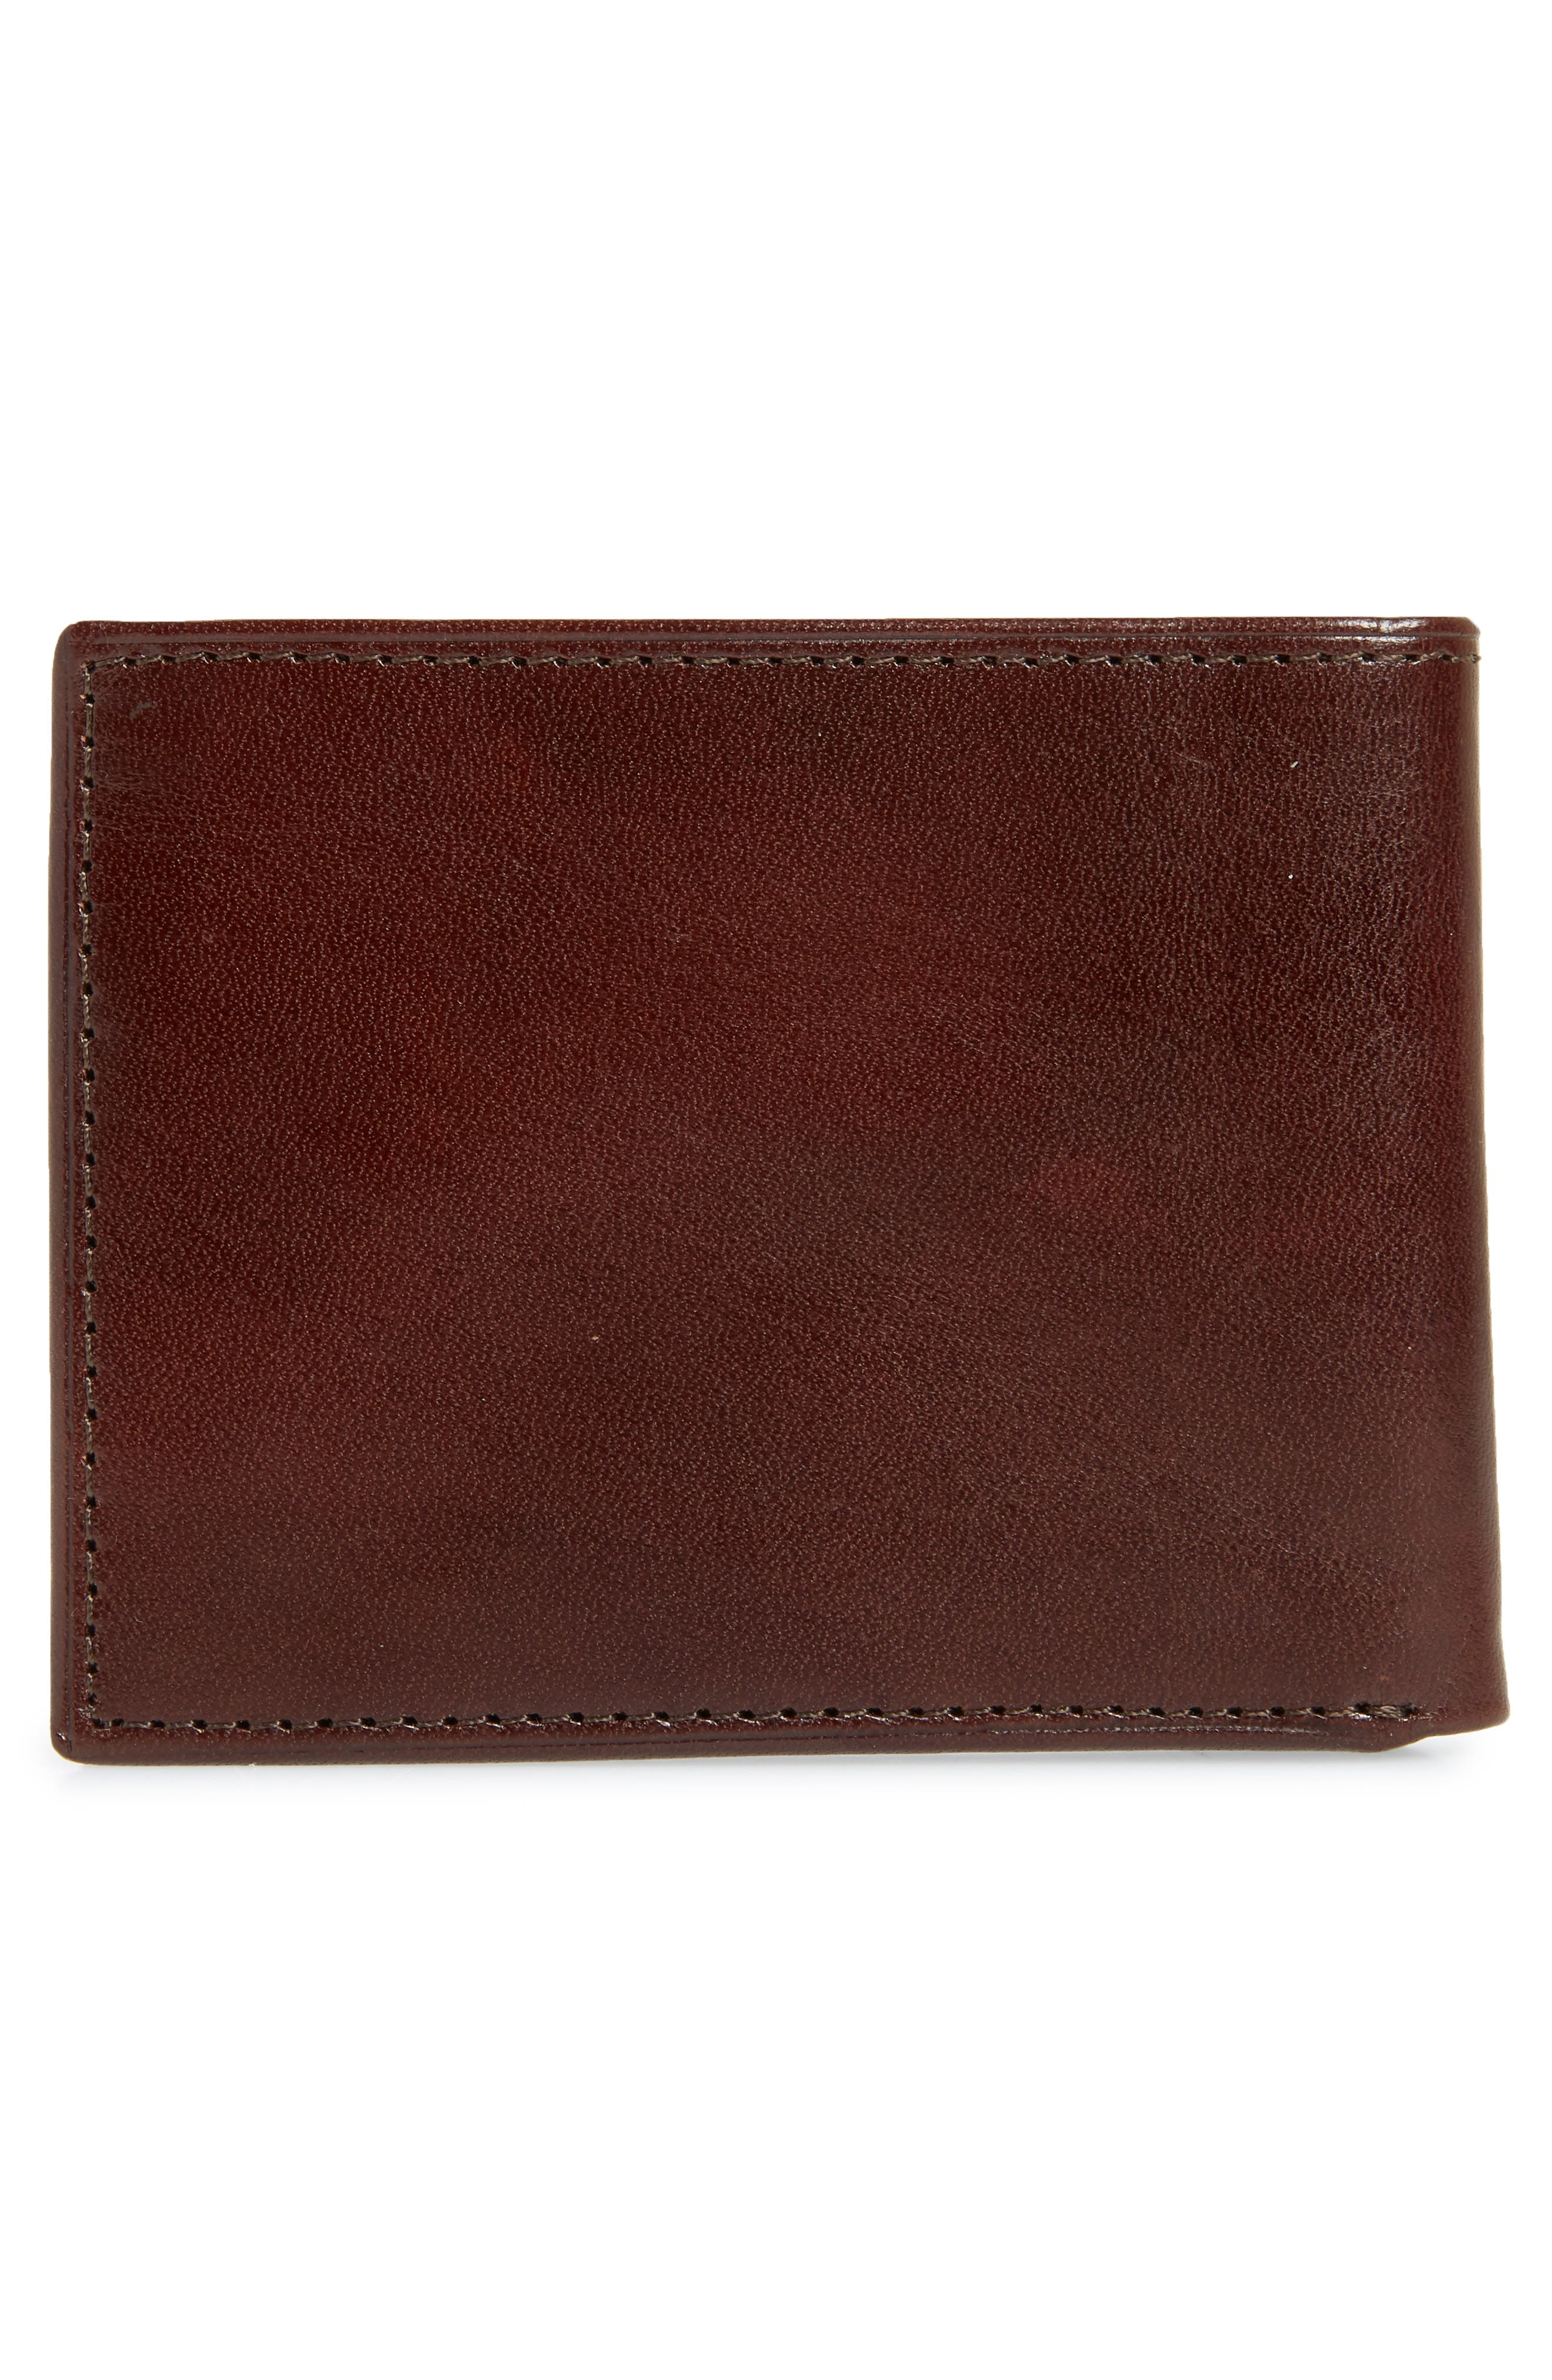 Slimfold Leather Wallet,                             Alternate thumbnail 2, color,                             Brown